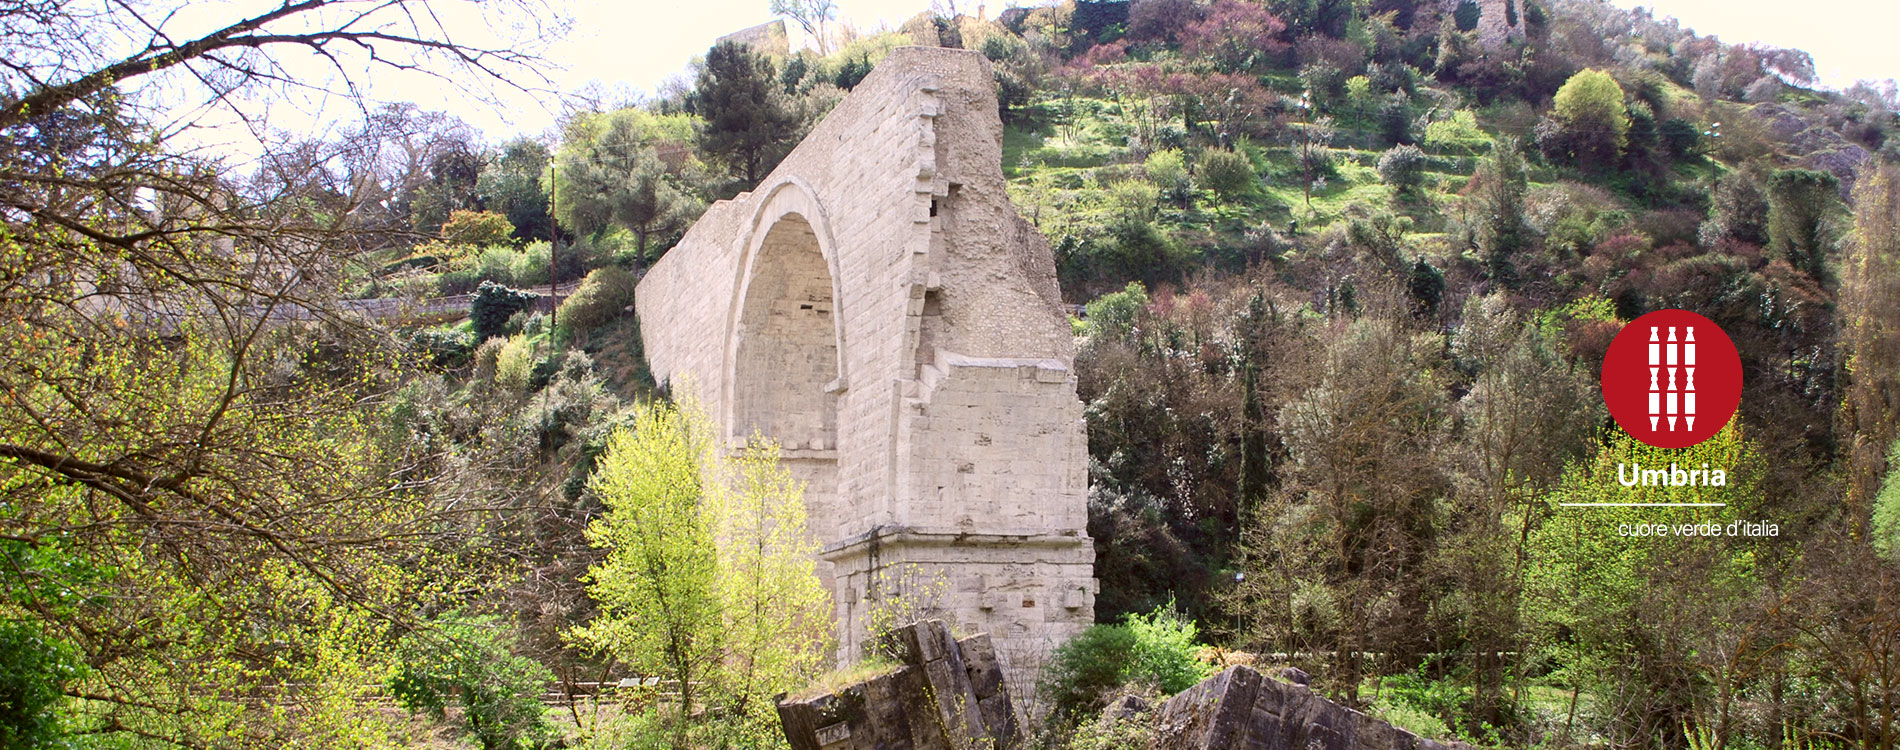 t4 narni ponte di augusto pilgrimage on the road proto martyrs franciscan